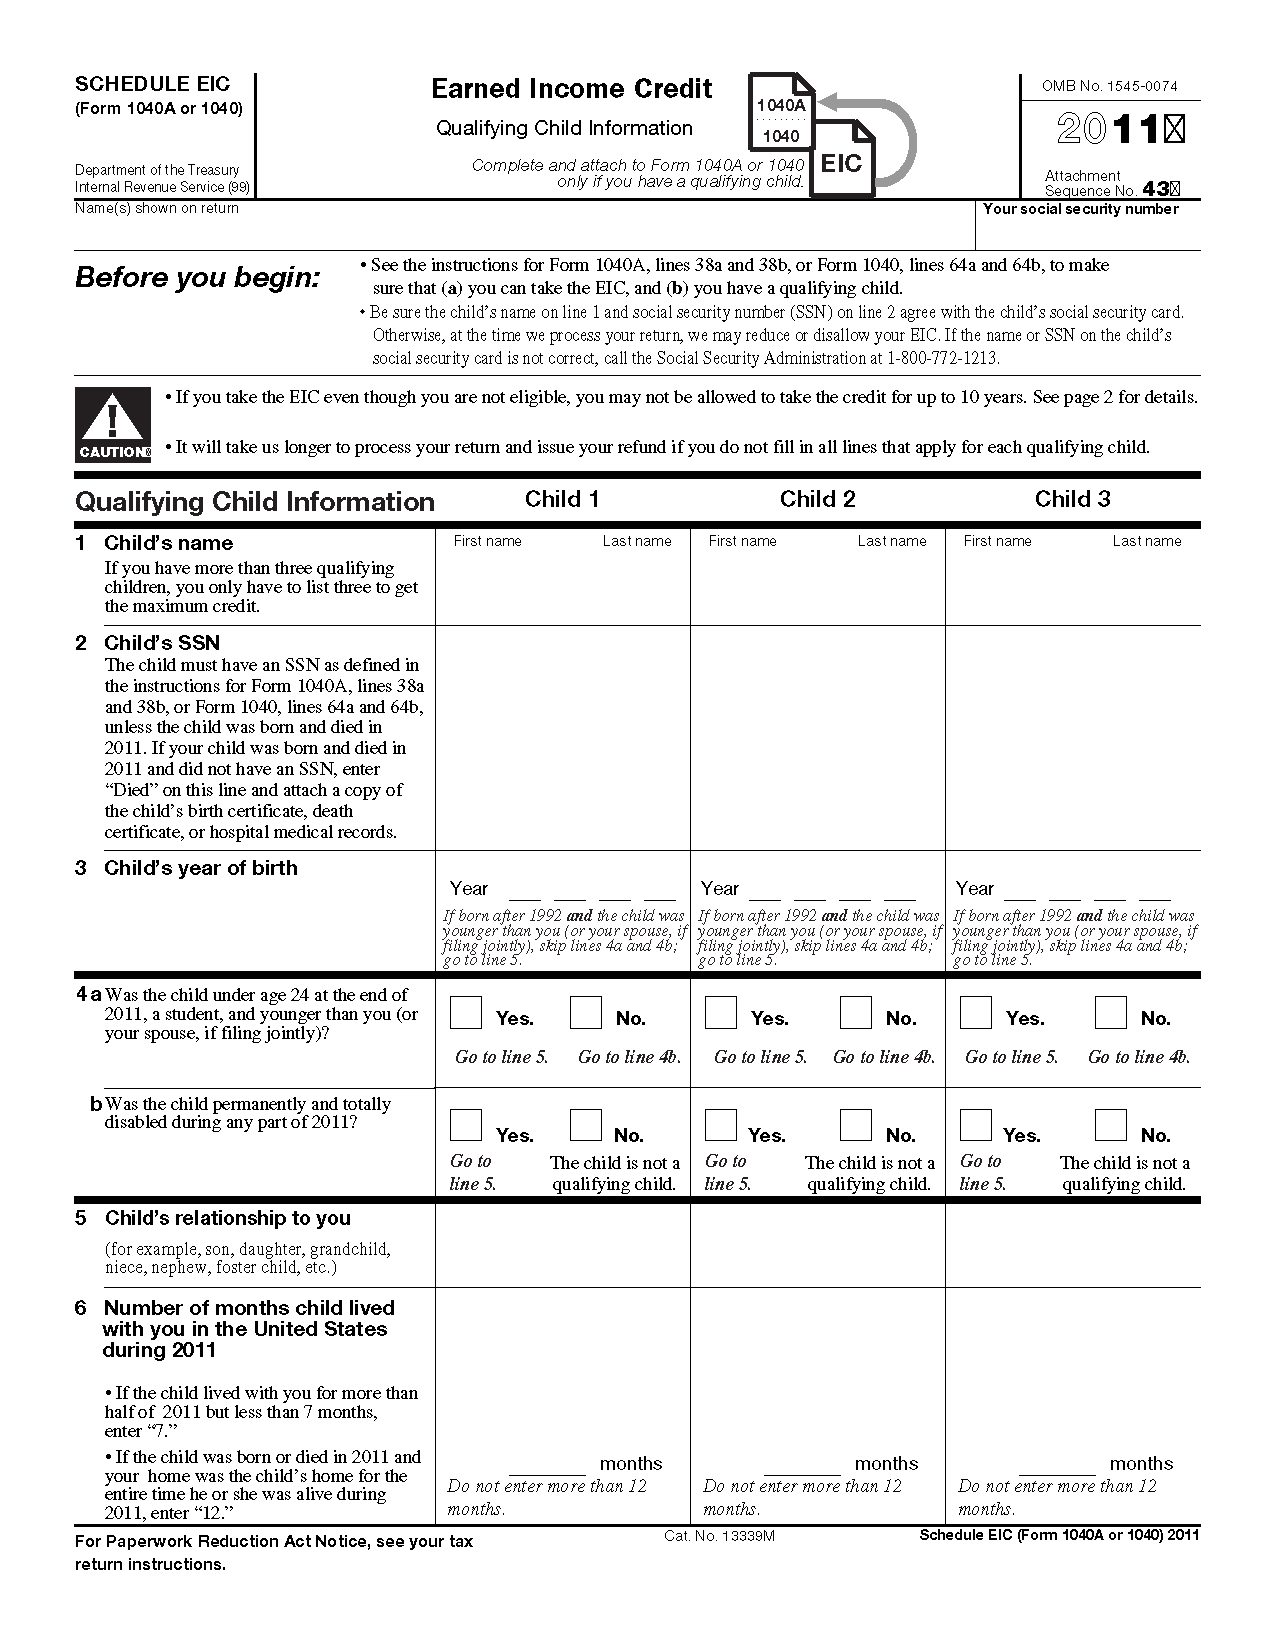 Irs Form Schedule Eic